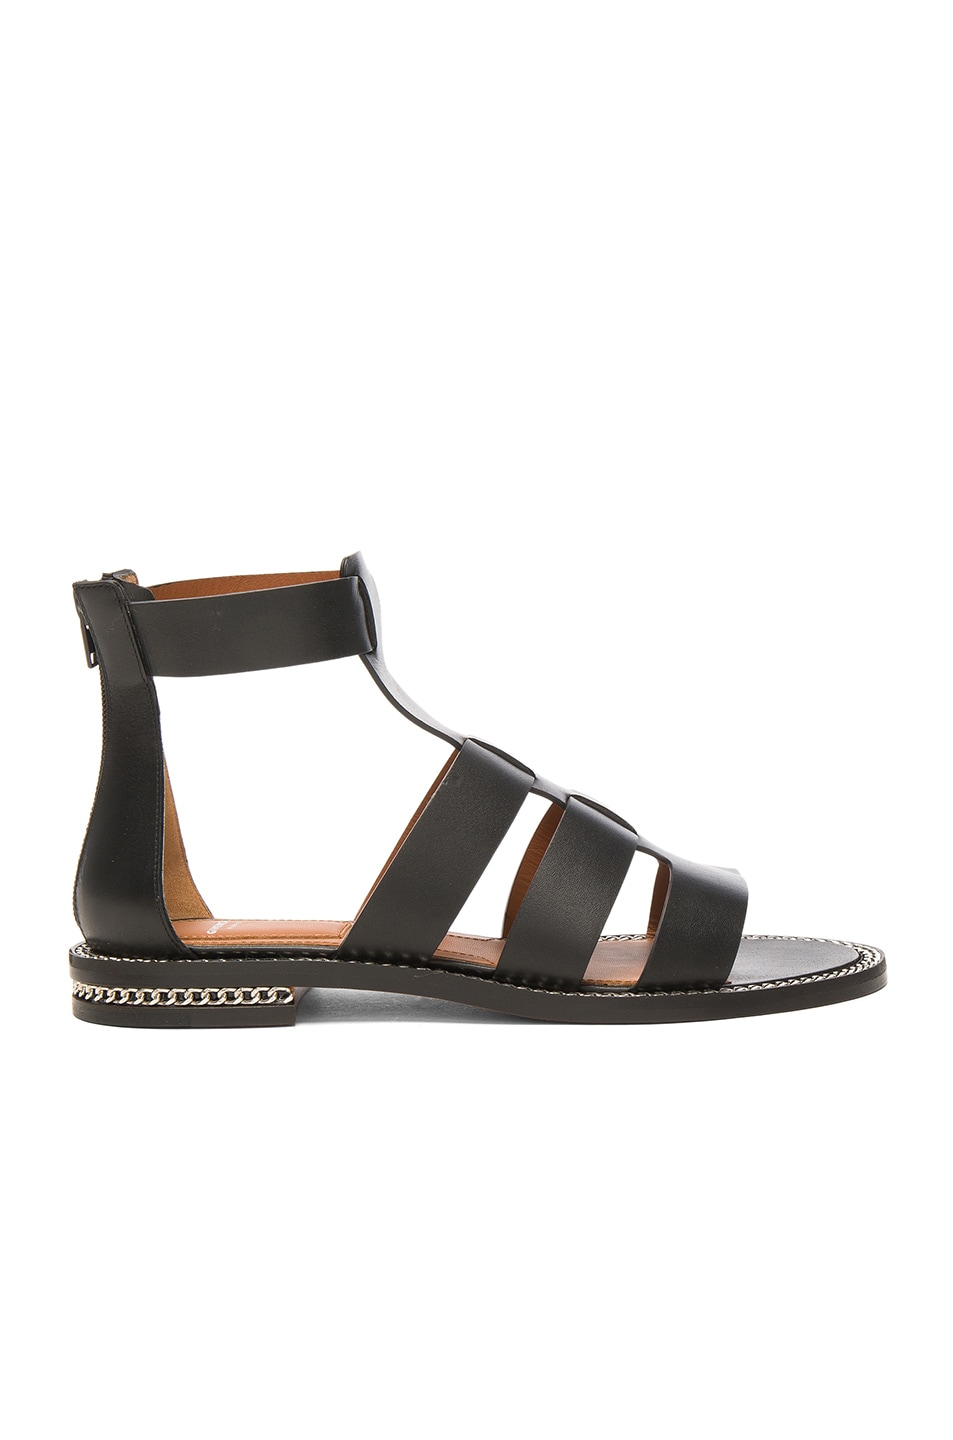 Image 1 of Givenchy Leather Gladiator Sandals in Black